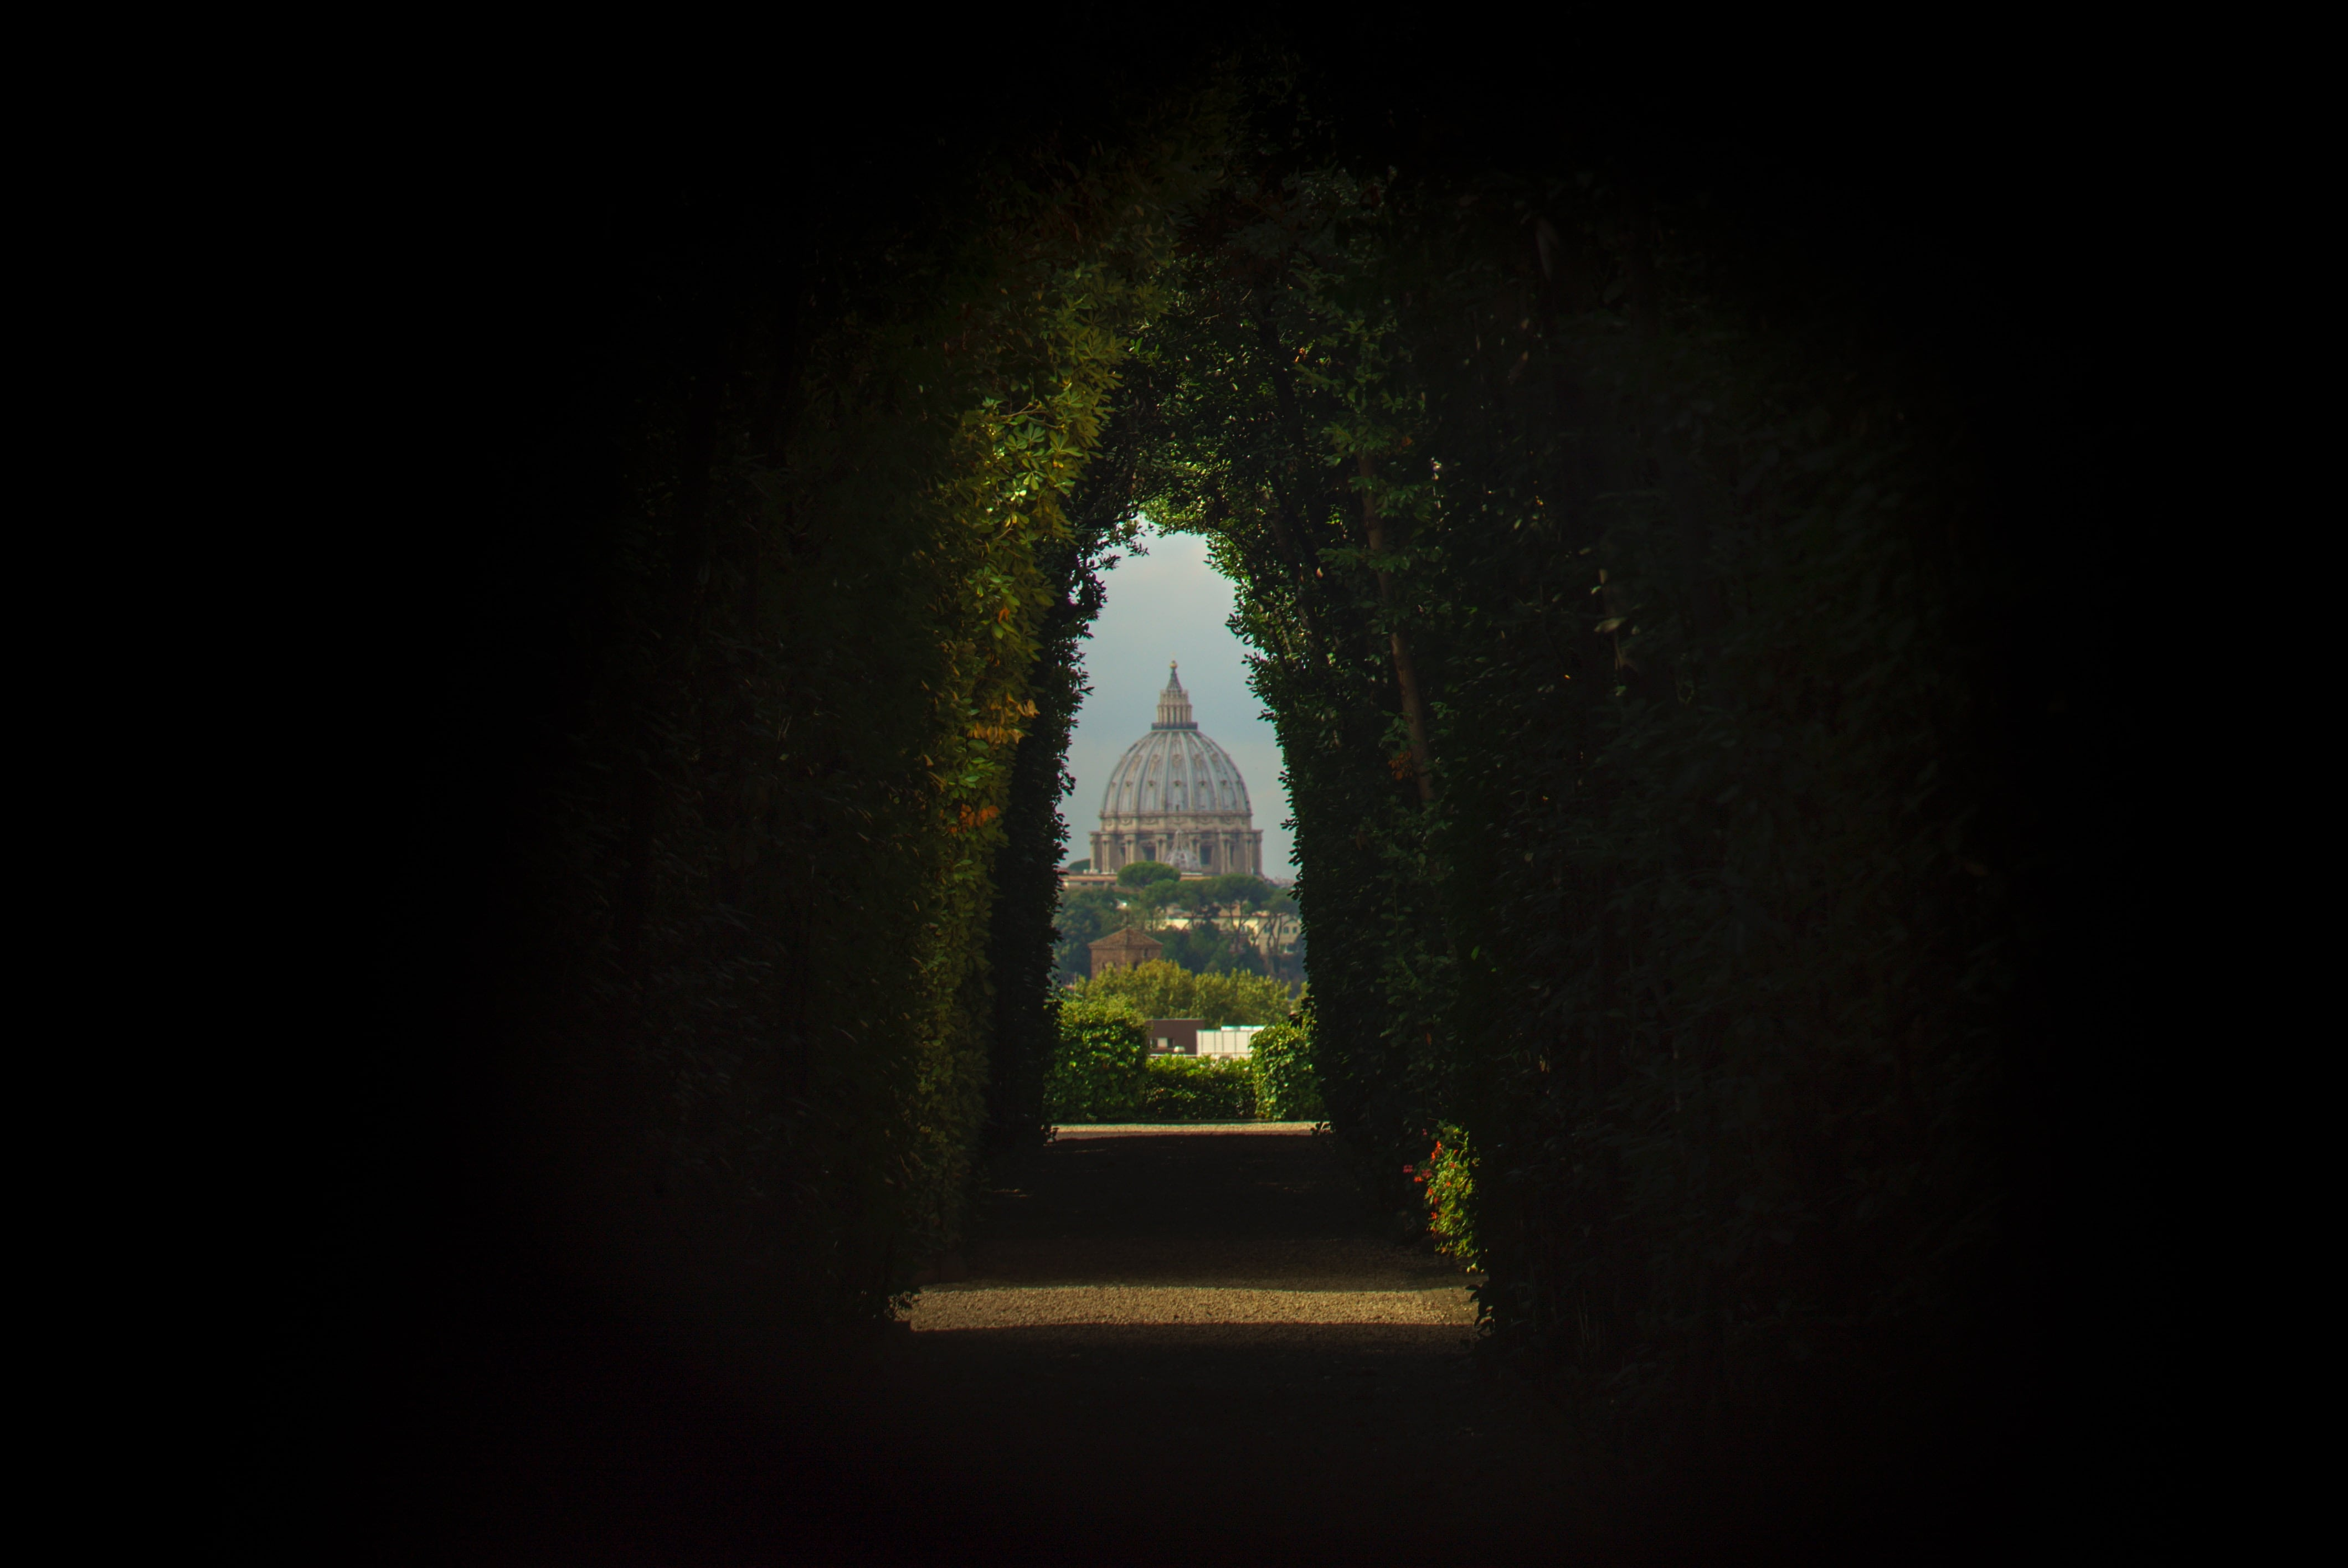 View of St Peter's Basilica through the Aventine Keyhole. Photo by Galen Crout on Unsplash